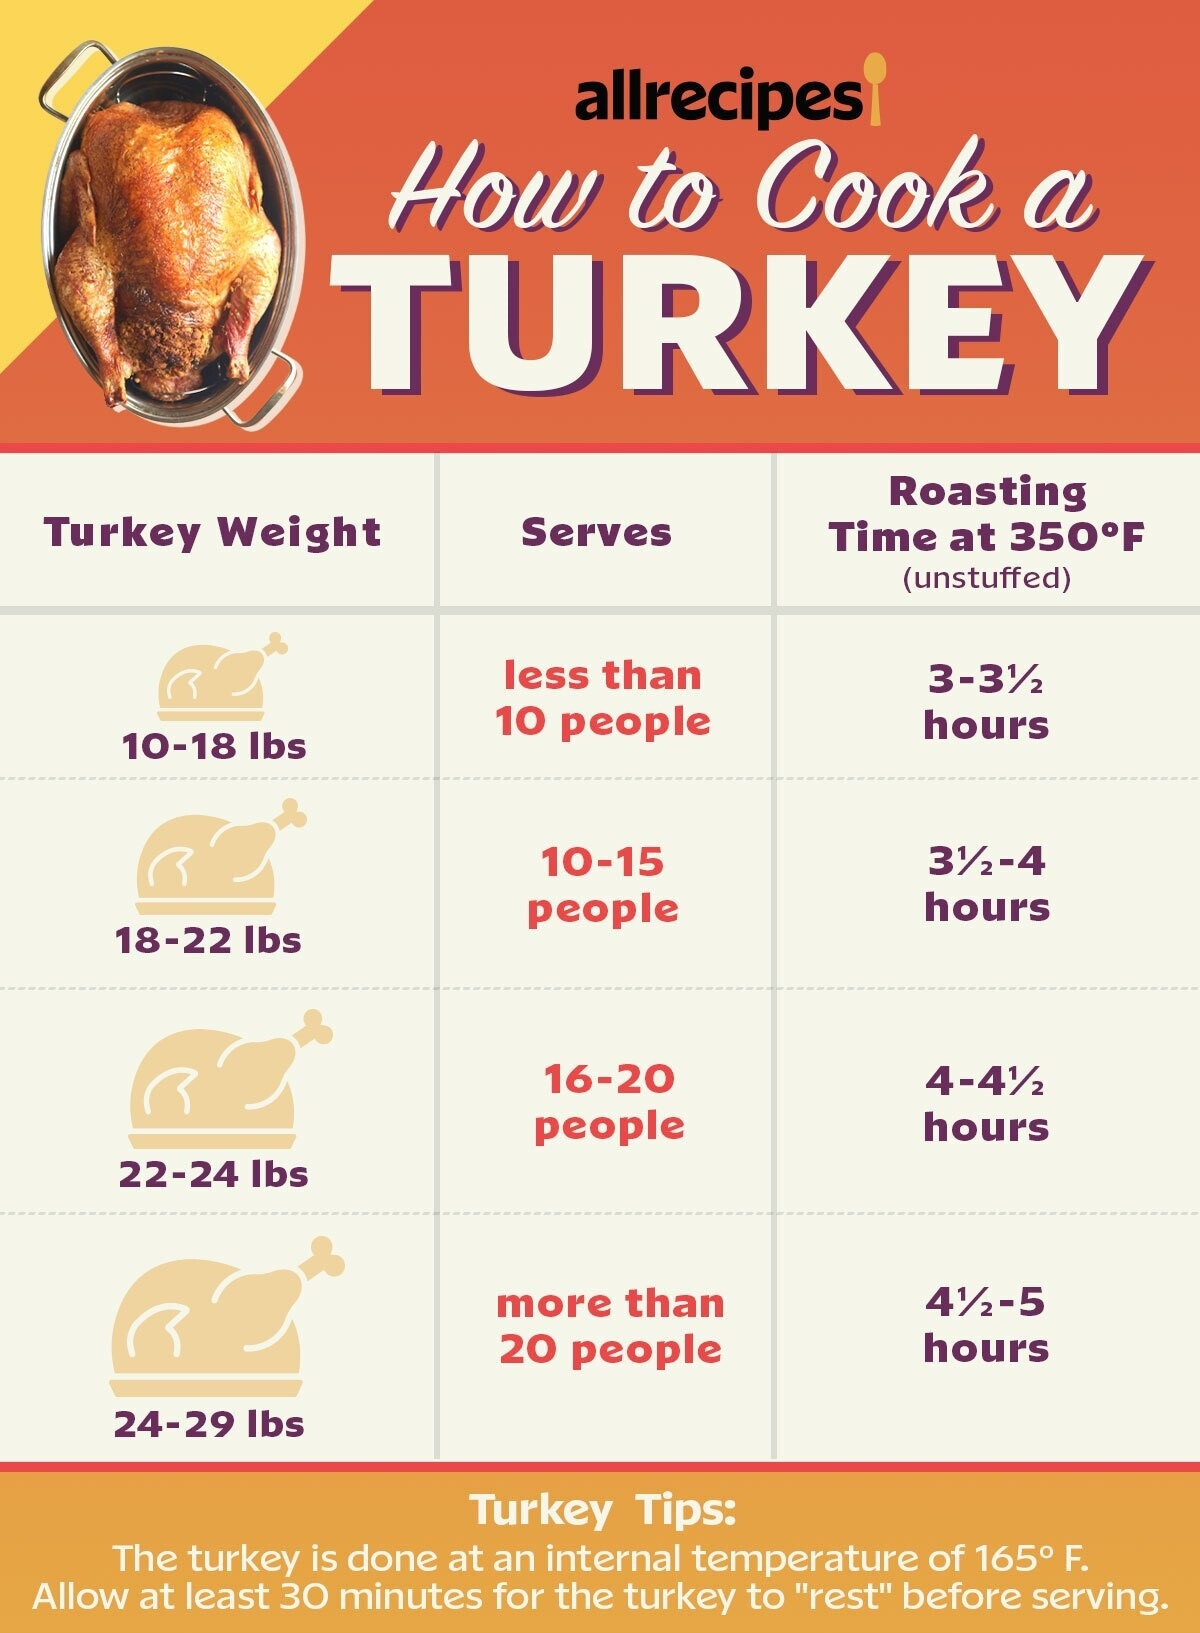 cooking time and temperature chart for roasting different size turkeys